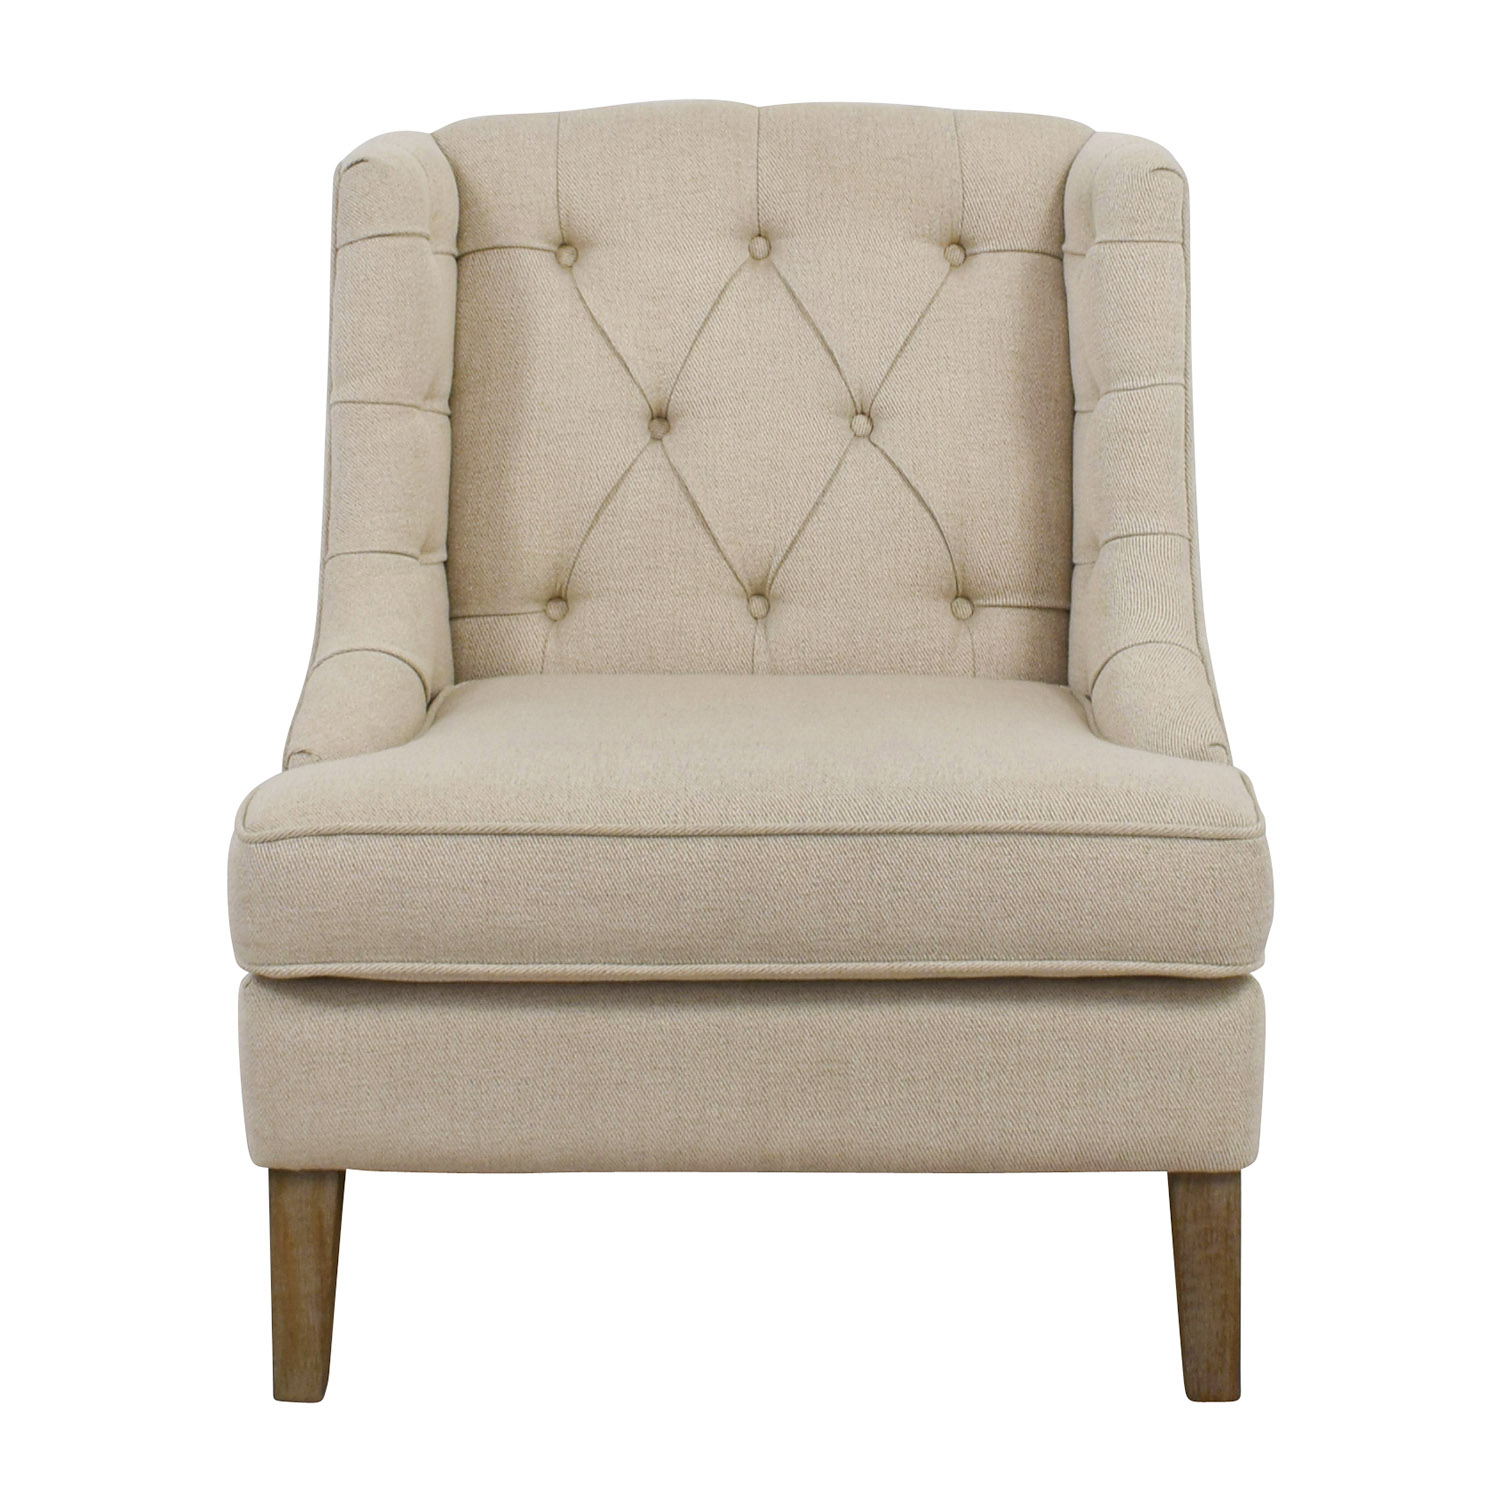 shop Madison Park Tufted Beige Arm Chair Madison Park